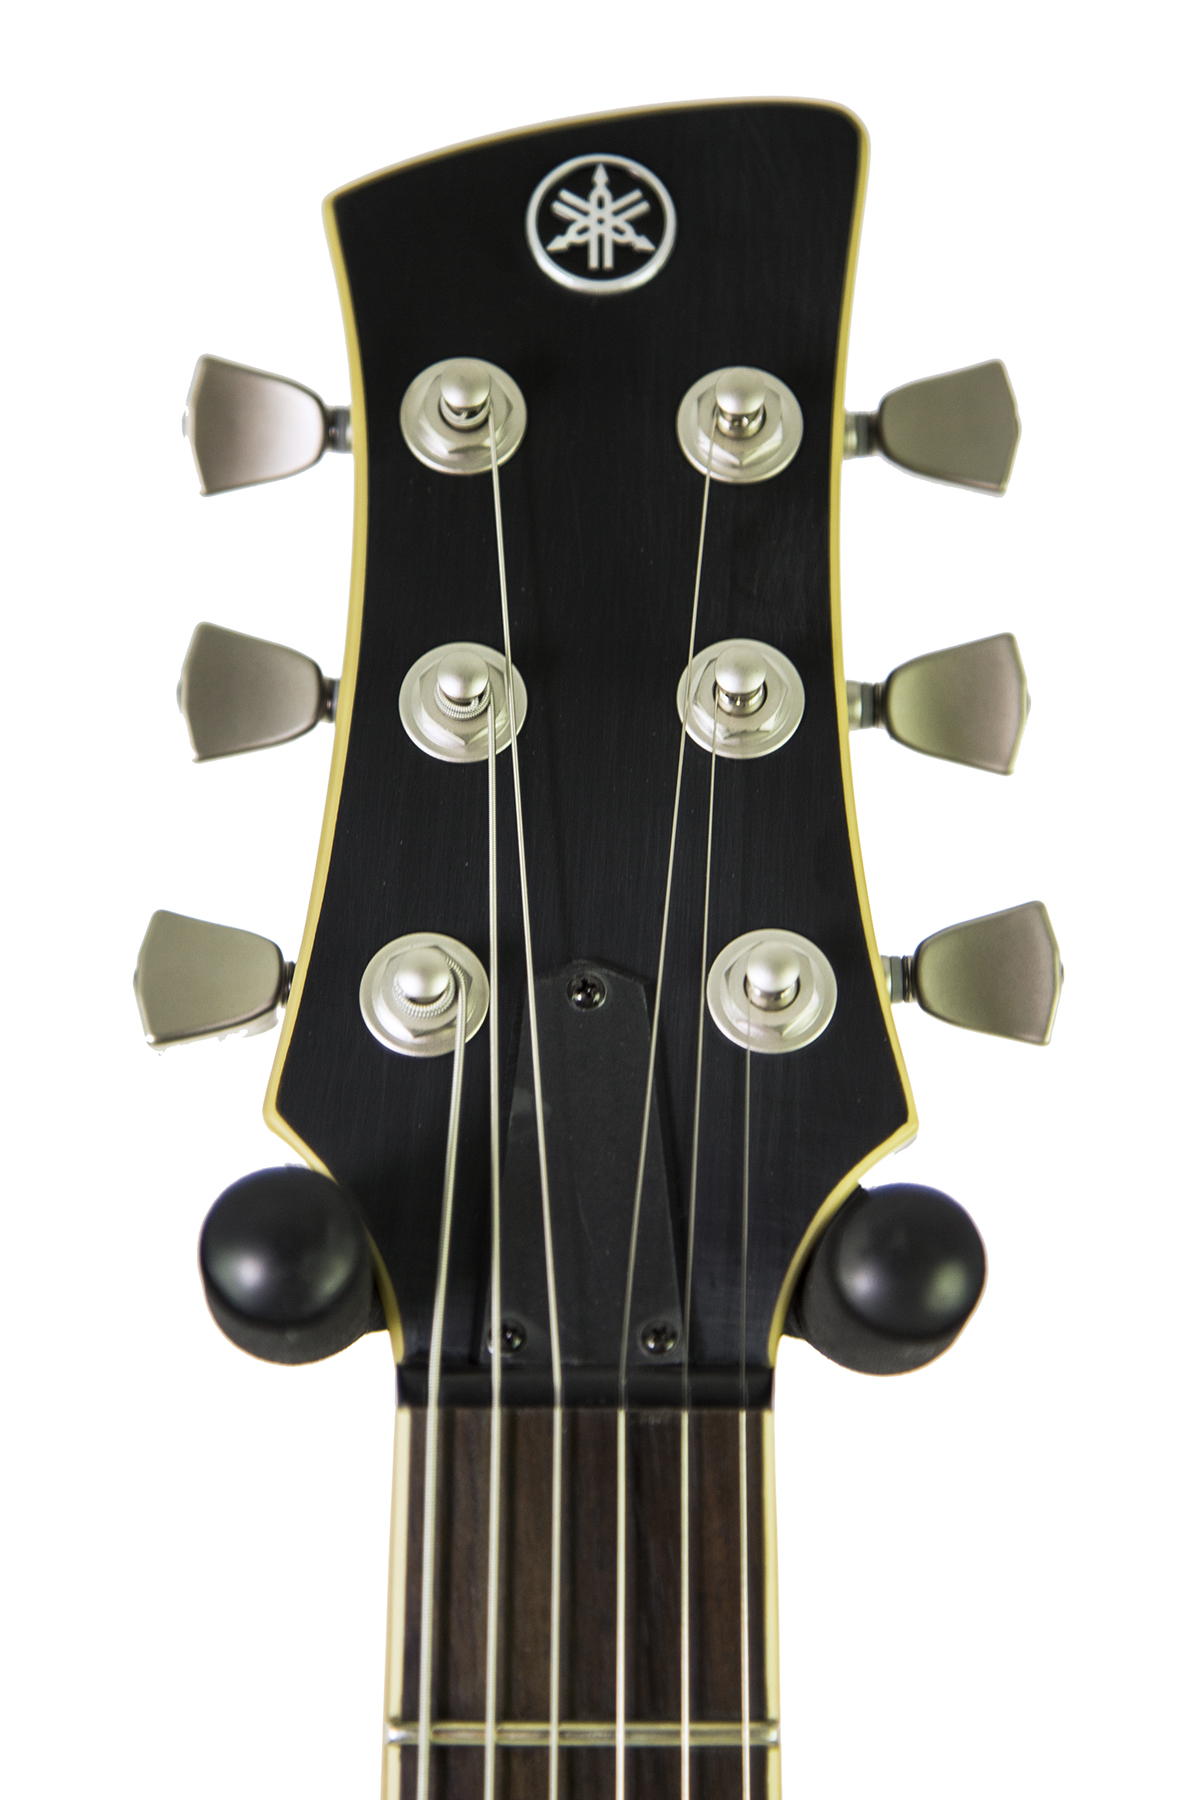 brand new yamaha revstar rs502 shop black electric guitar new york music emporium. Black Bedroom Furniture Sets. Home Design Ideas